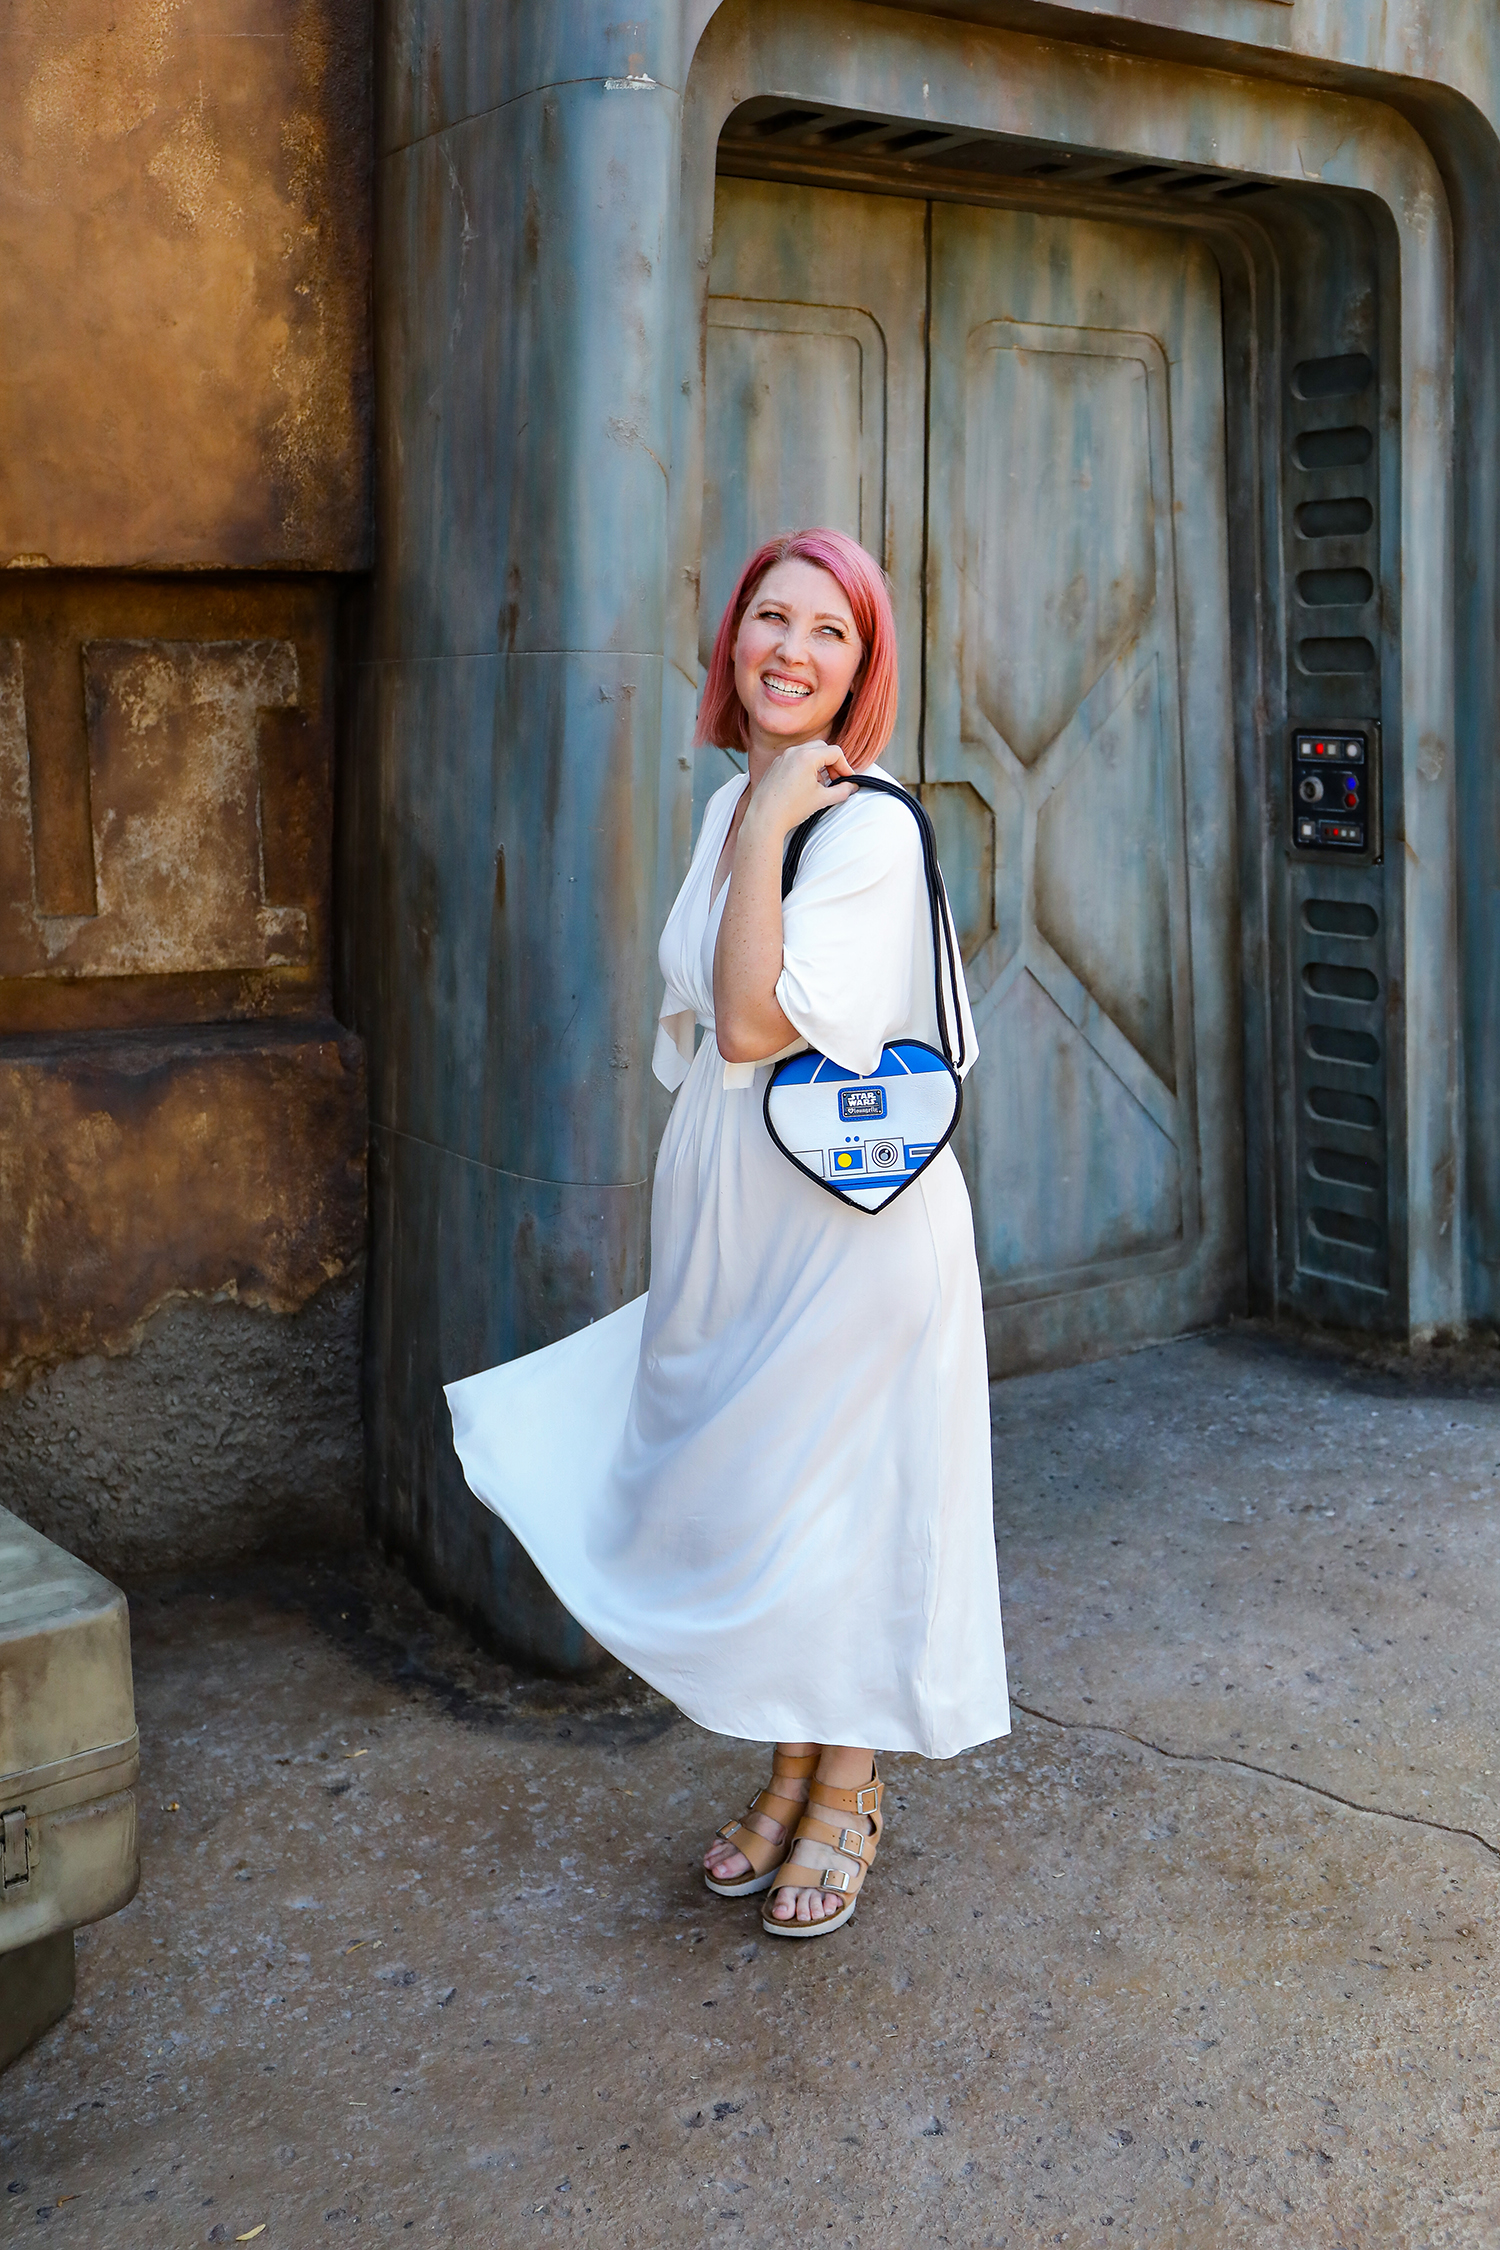 Looking for the perfect Disneybound to wear to Star Wars Land? This Leia Disneybound is PERFECTION!